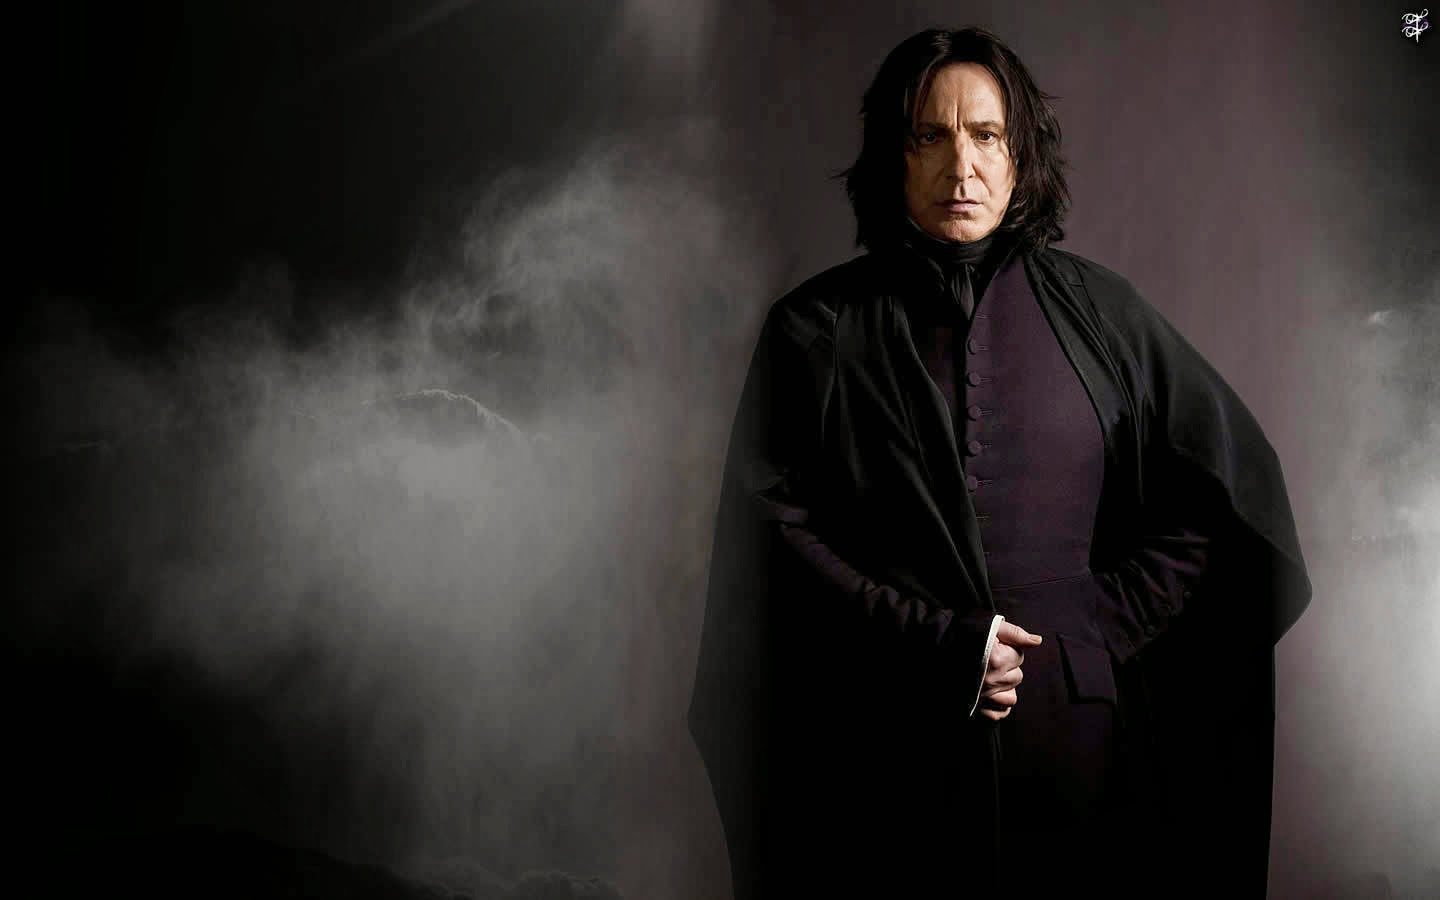 Free Desktop Wallpaper Severus Snape Wallpaper Page 3